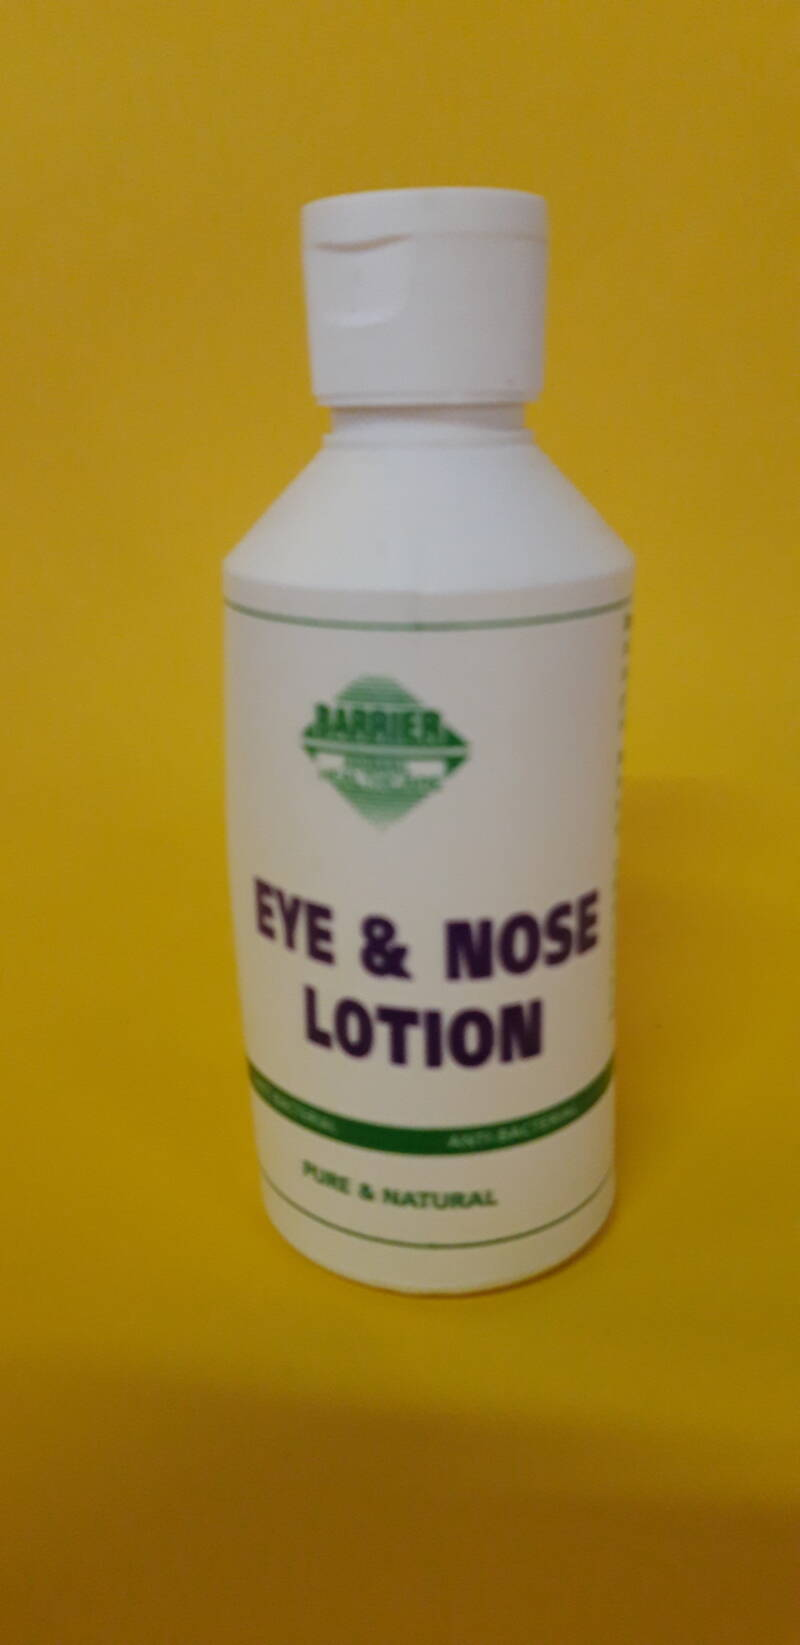 Eye & nose lotion horse